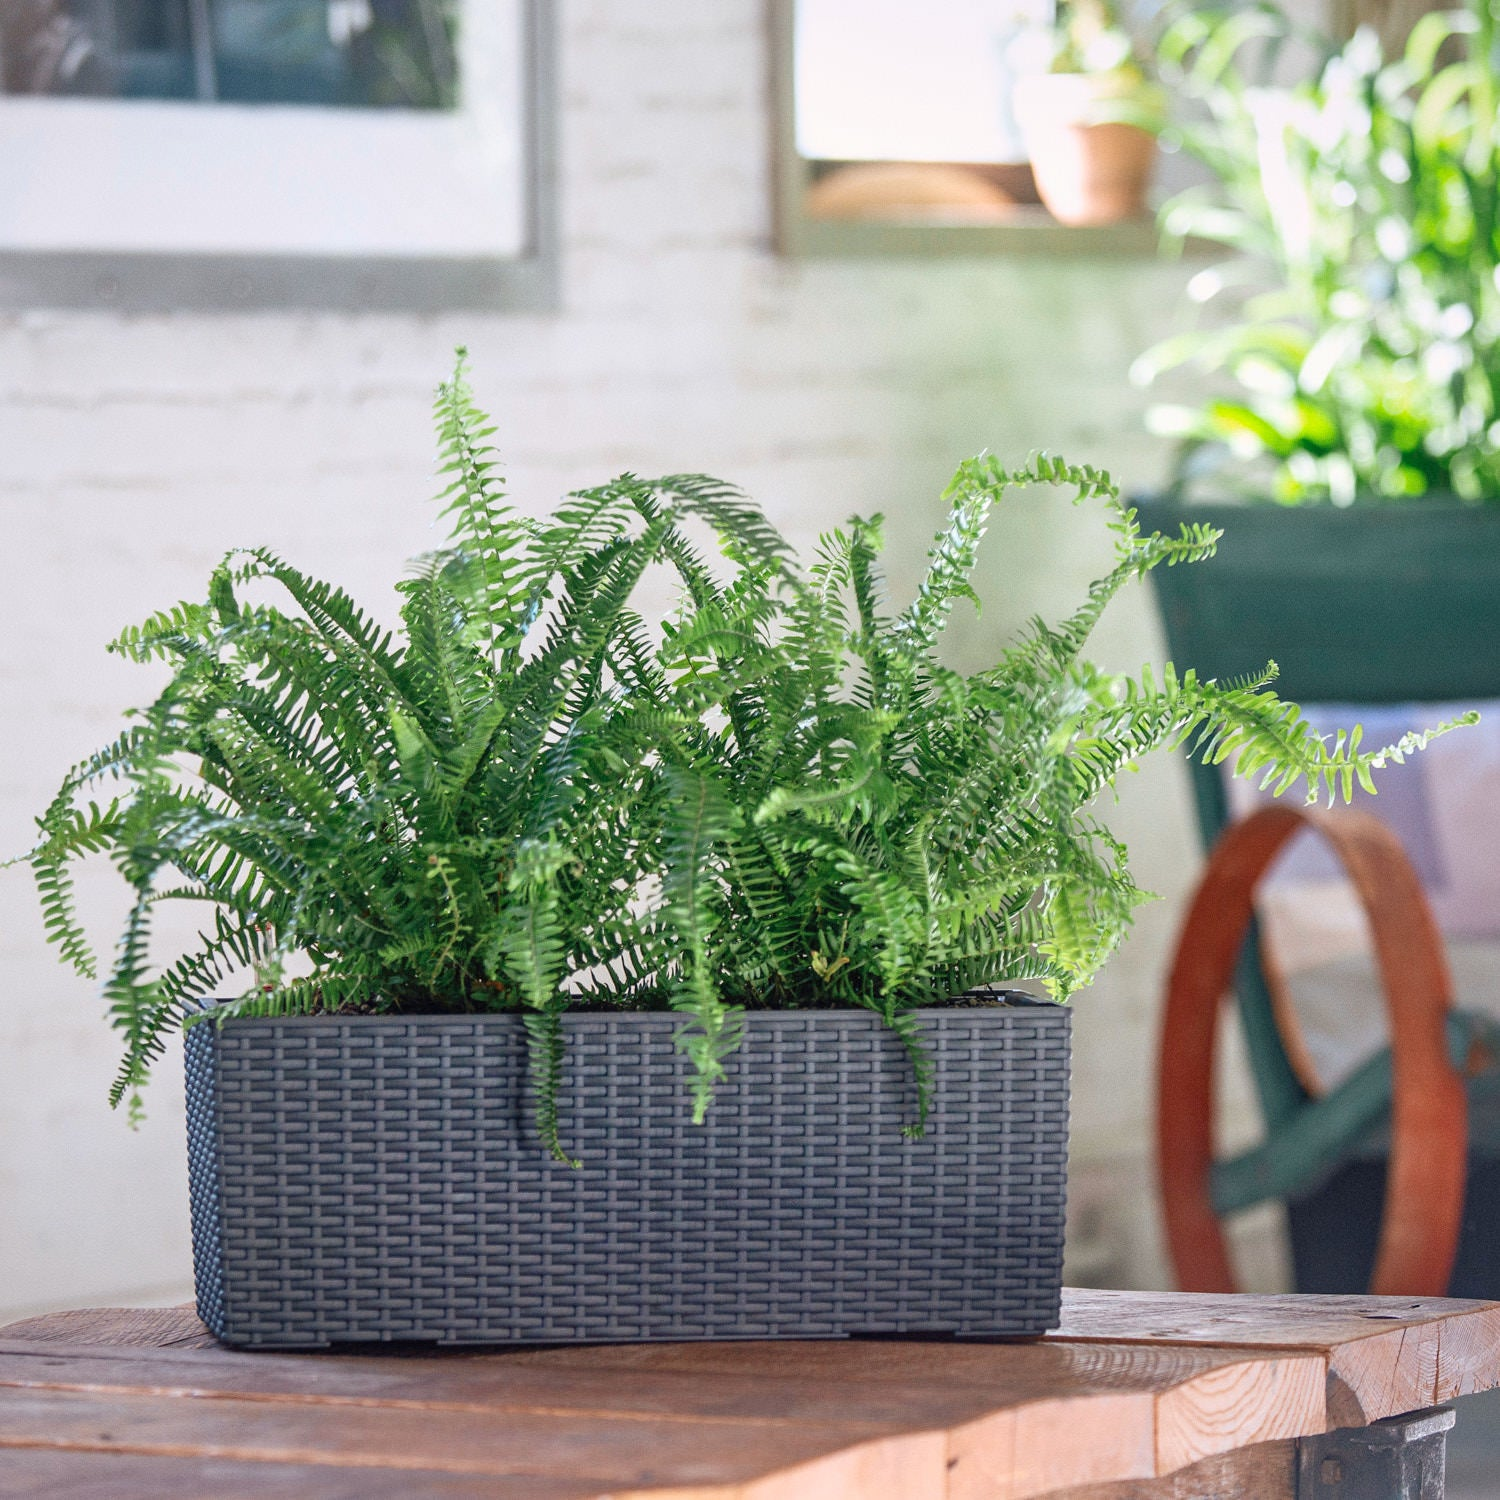 Kimberly Queen Fern potted in Lechuza Balconera Cottage granite planter - My City Plants